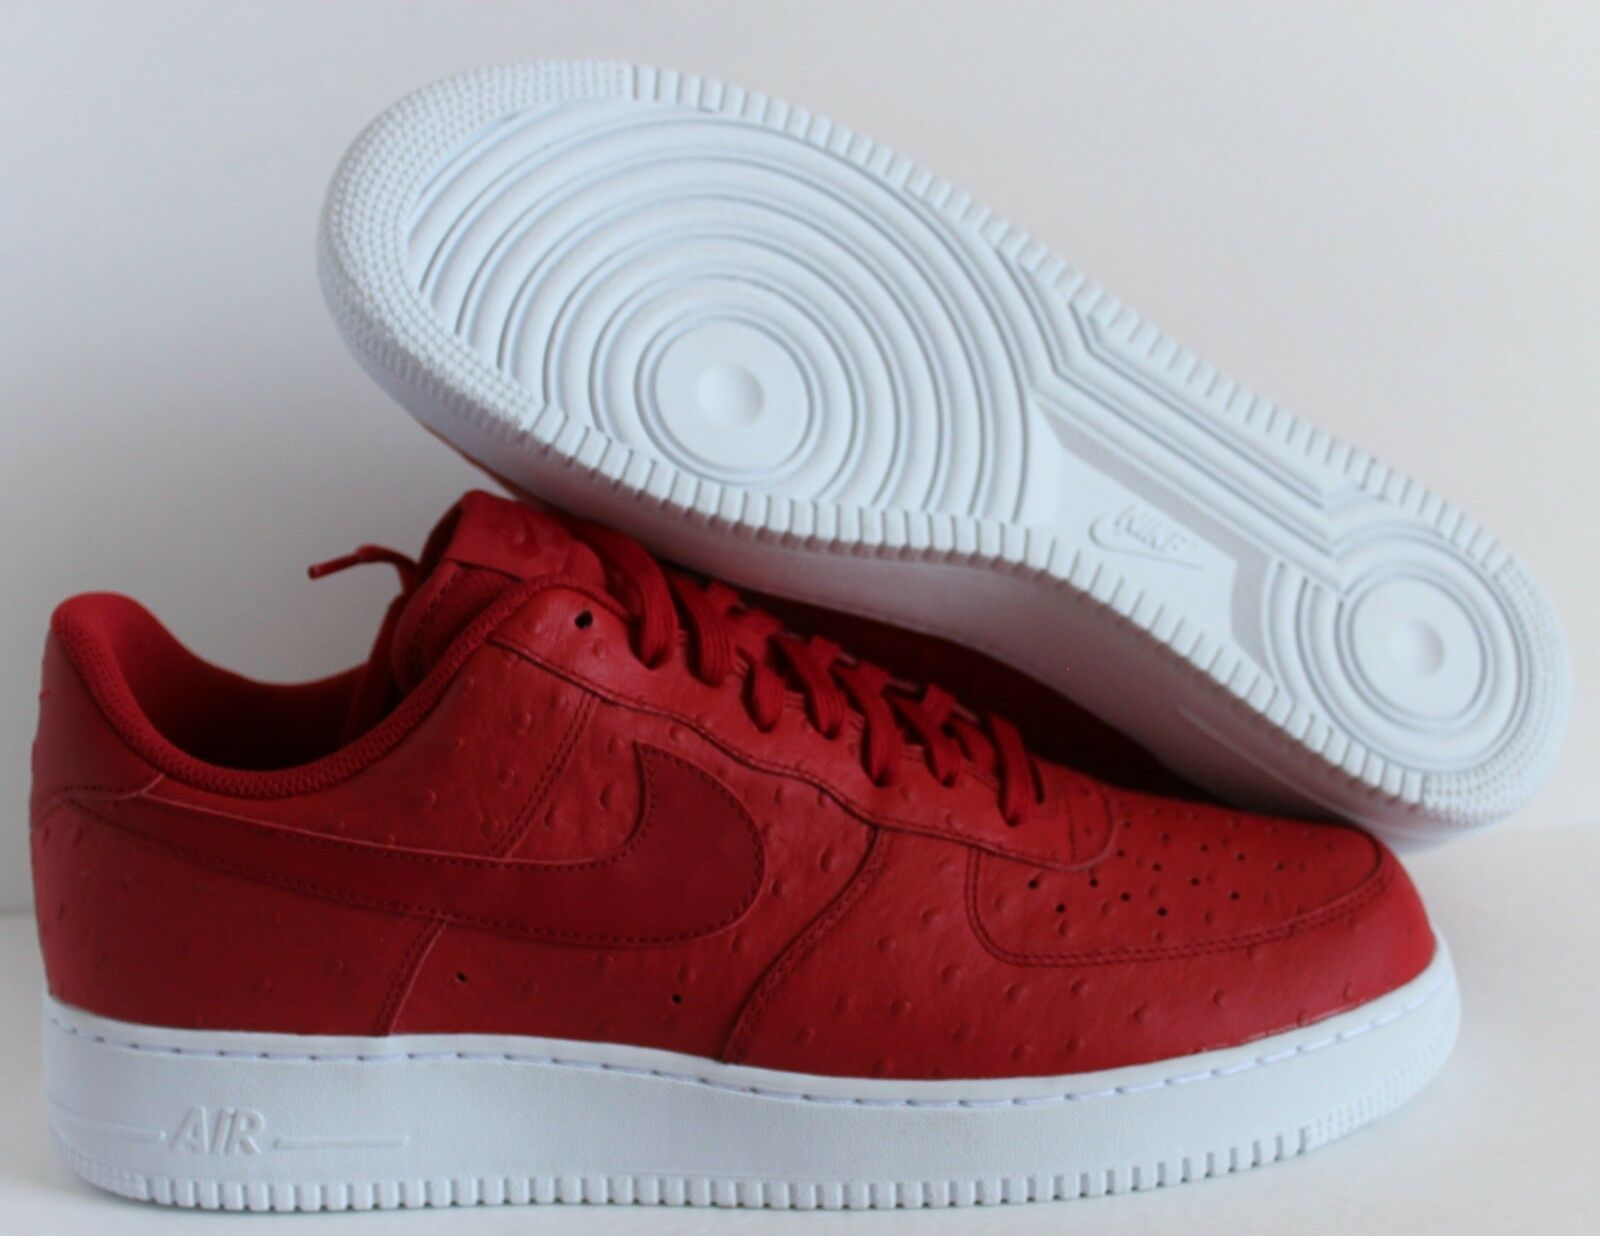 Nike Air Force 1 '07 Lv8 Ostrich Sz 11.5 718152 603 Gym Red Classic